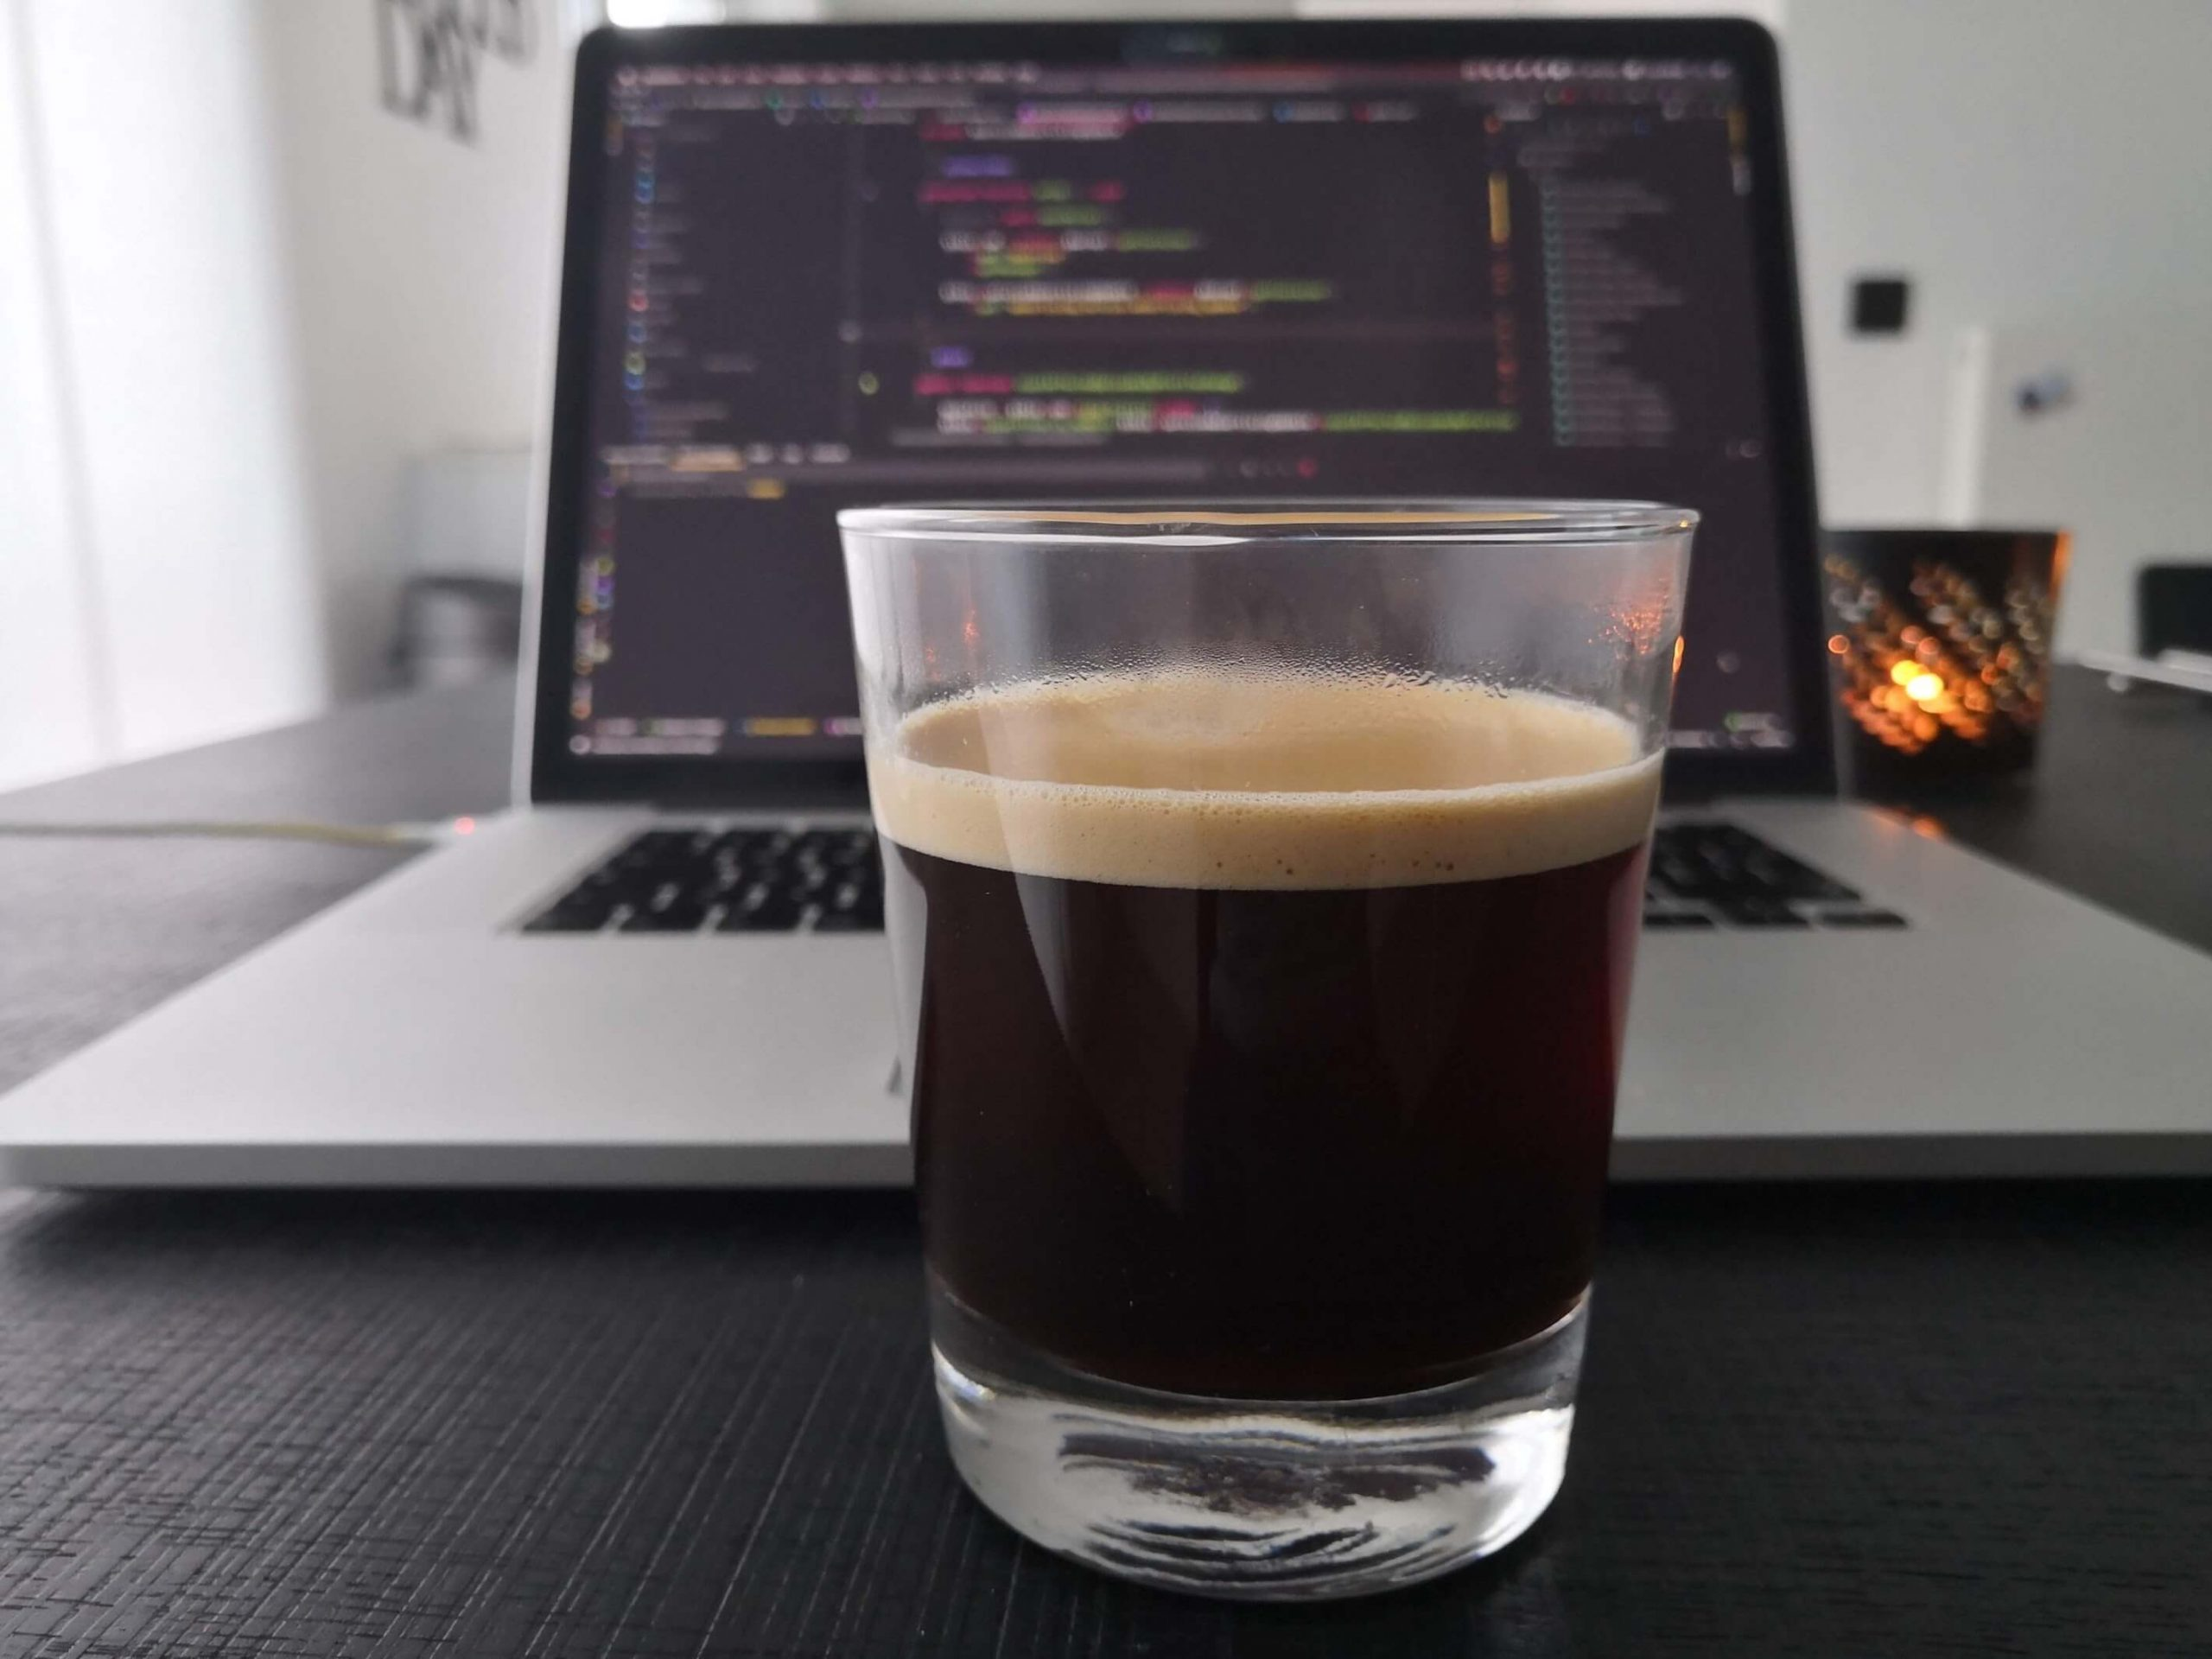 Working remotely for 5 months